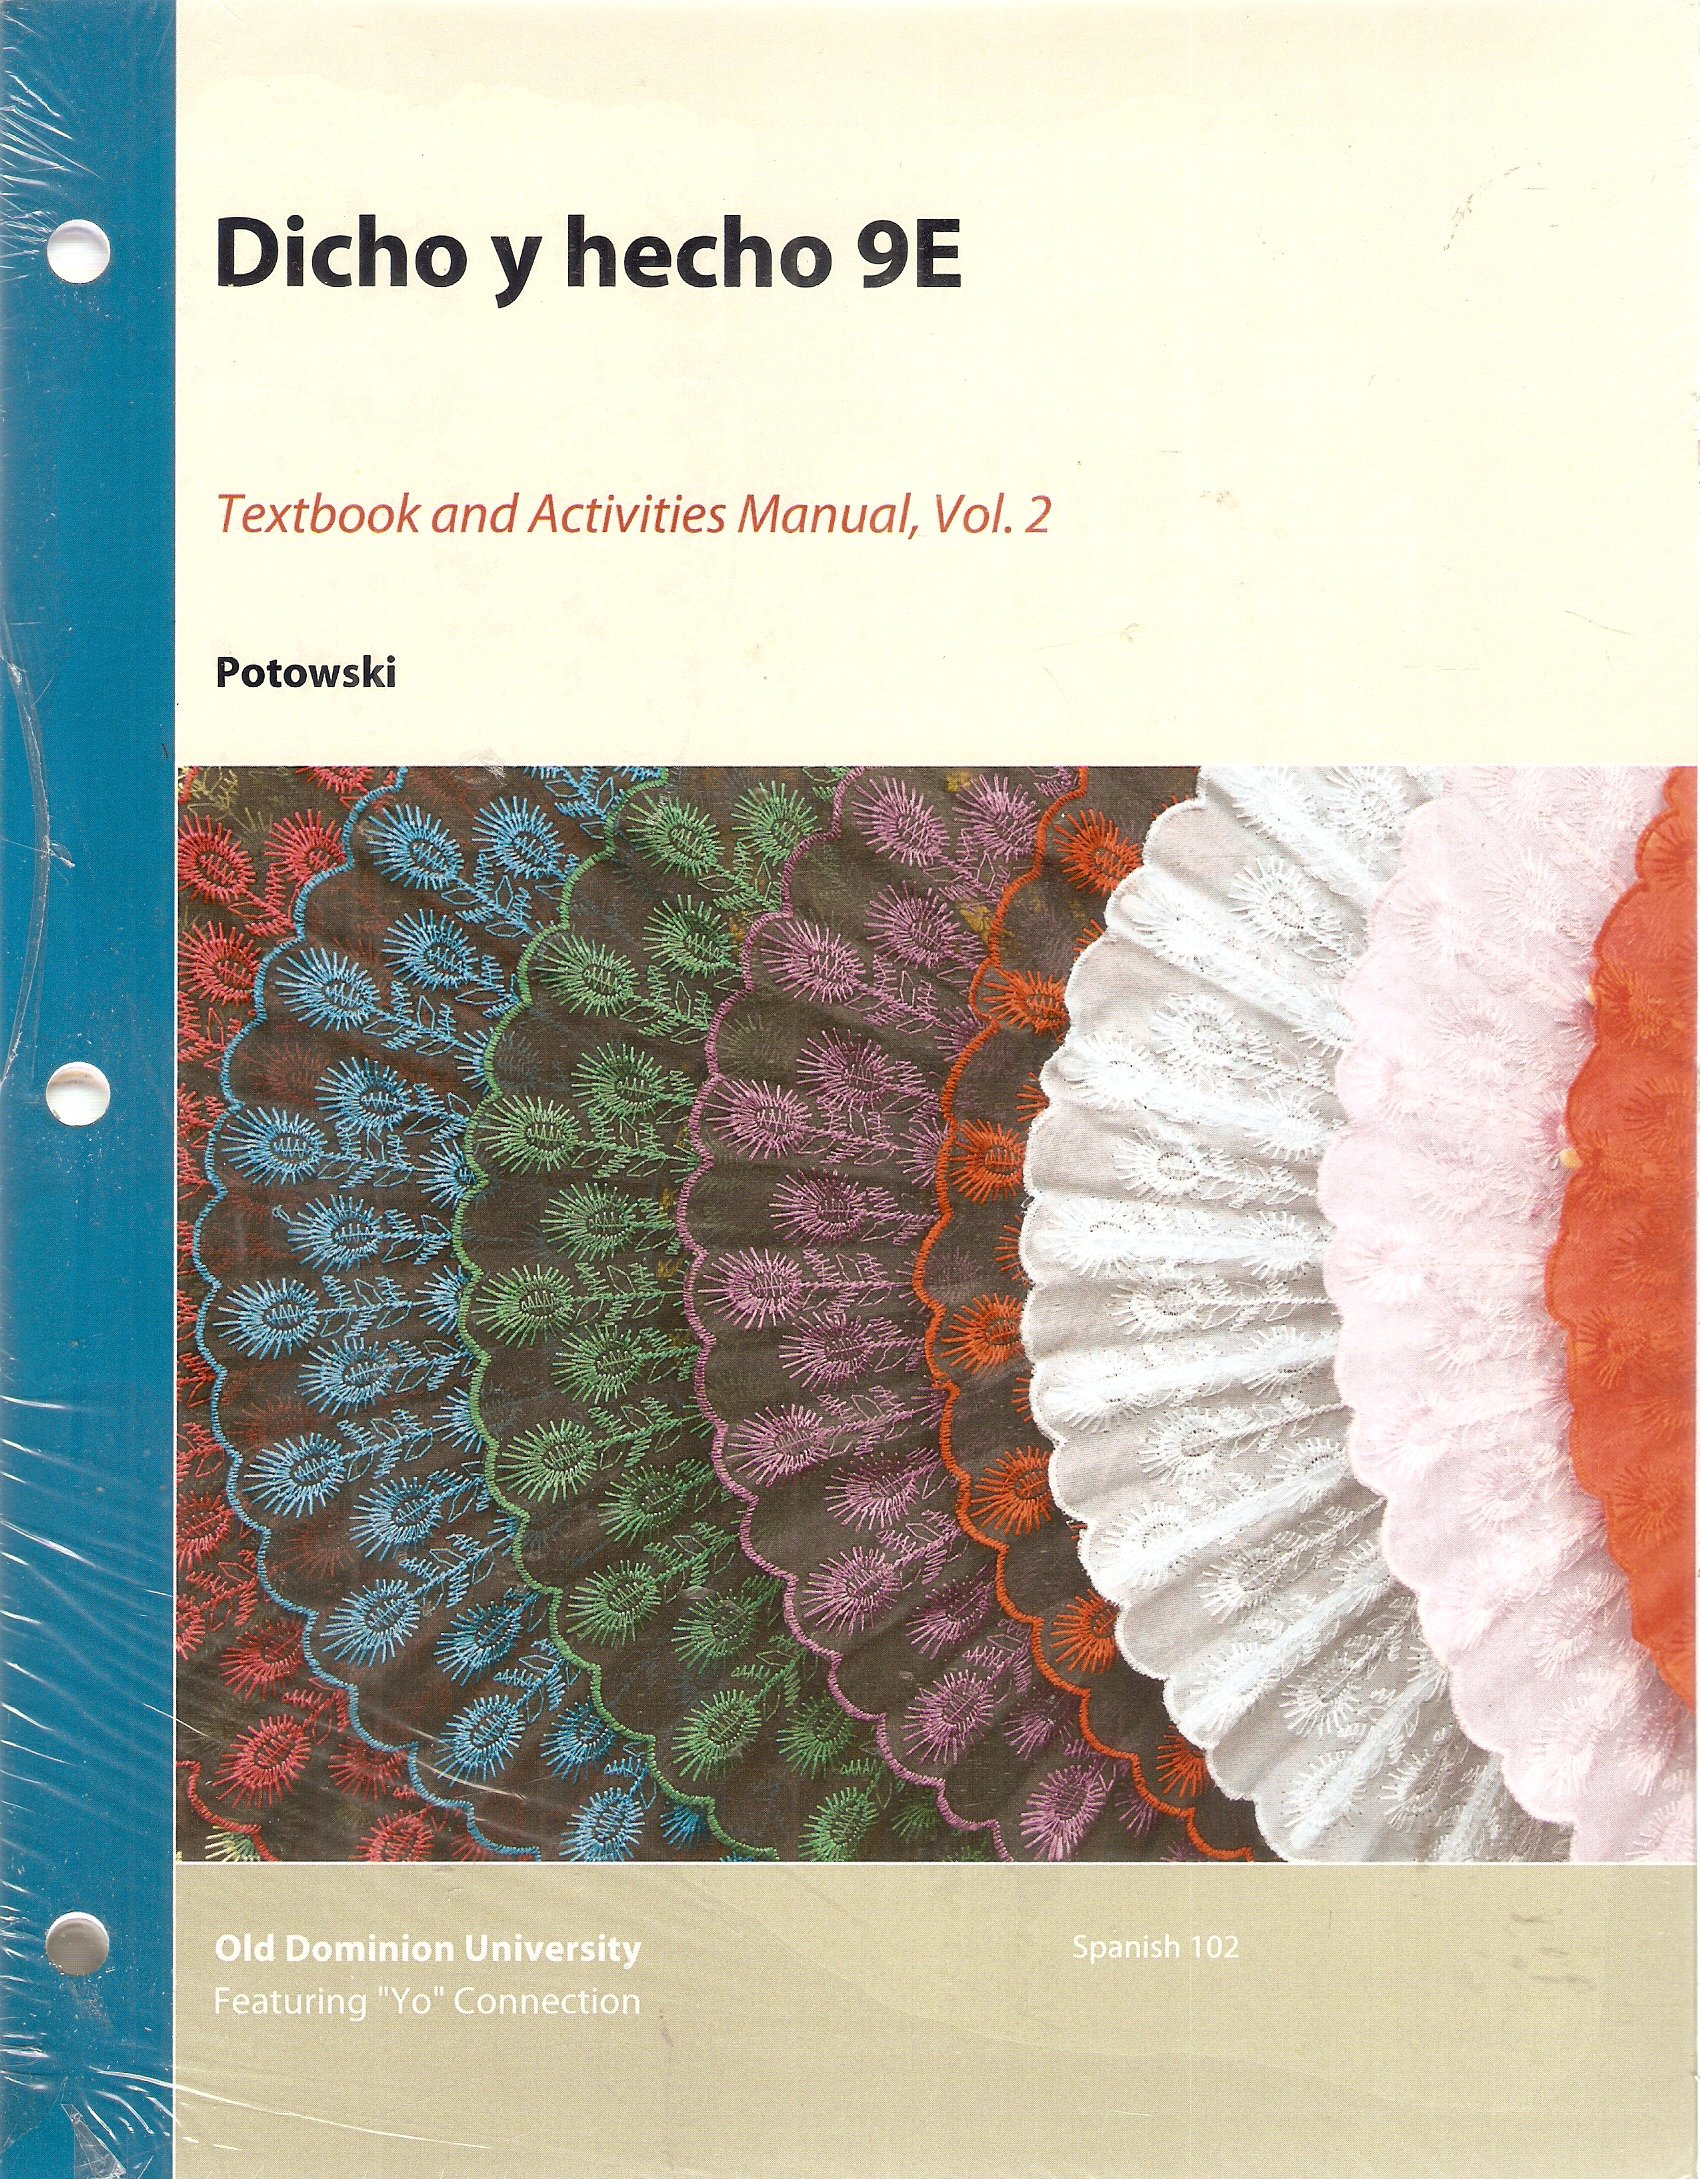 """Dicho y hecho: Textbook and Activities Manual, Volume 2 - 9th Edition (Old  Dominion University, Spanish 102 Featuring """"Yo"""" Connection""""): ..."""